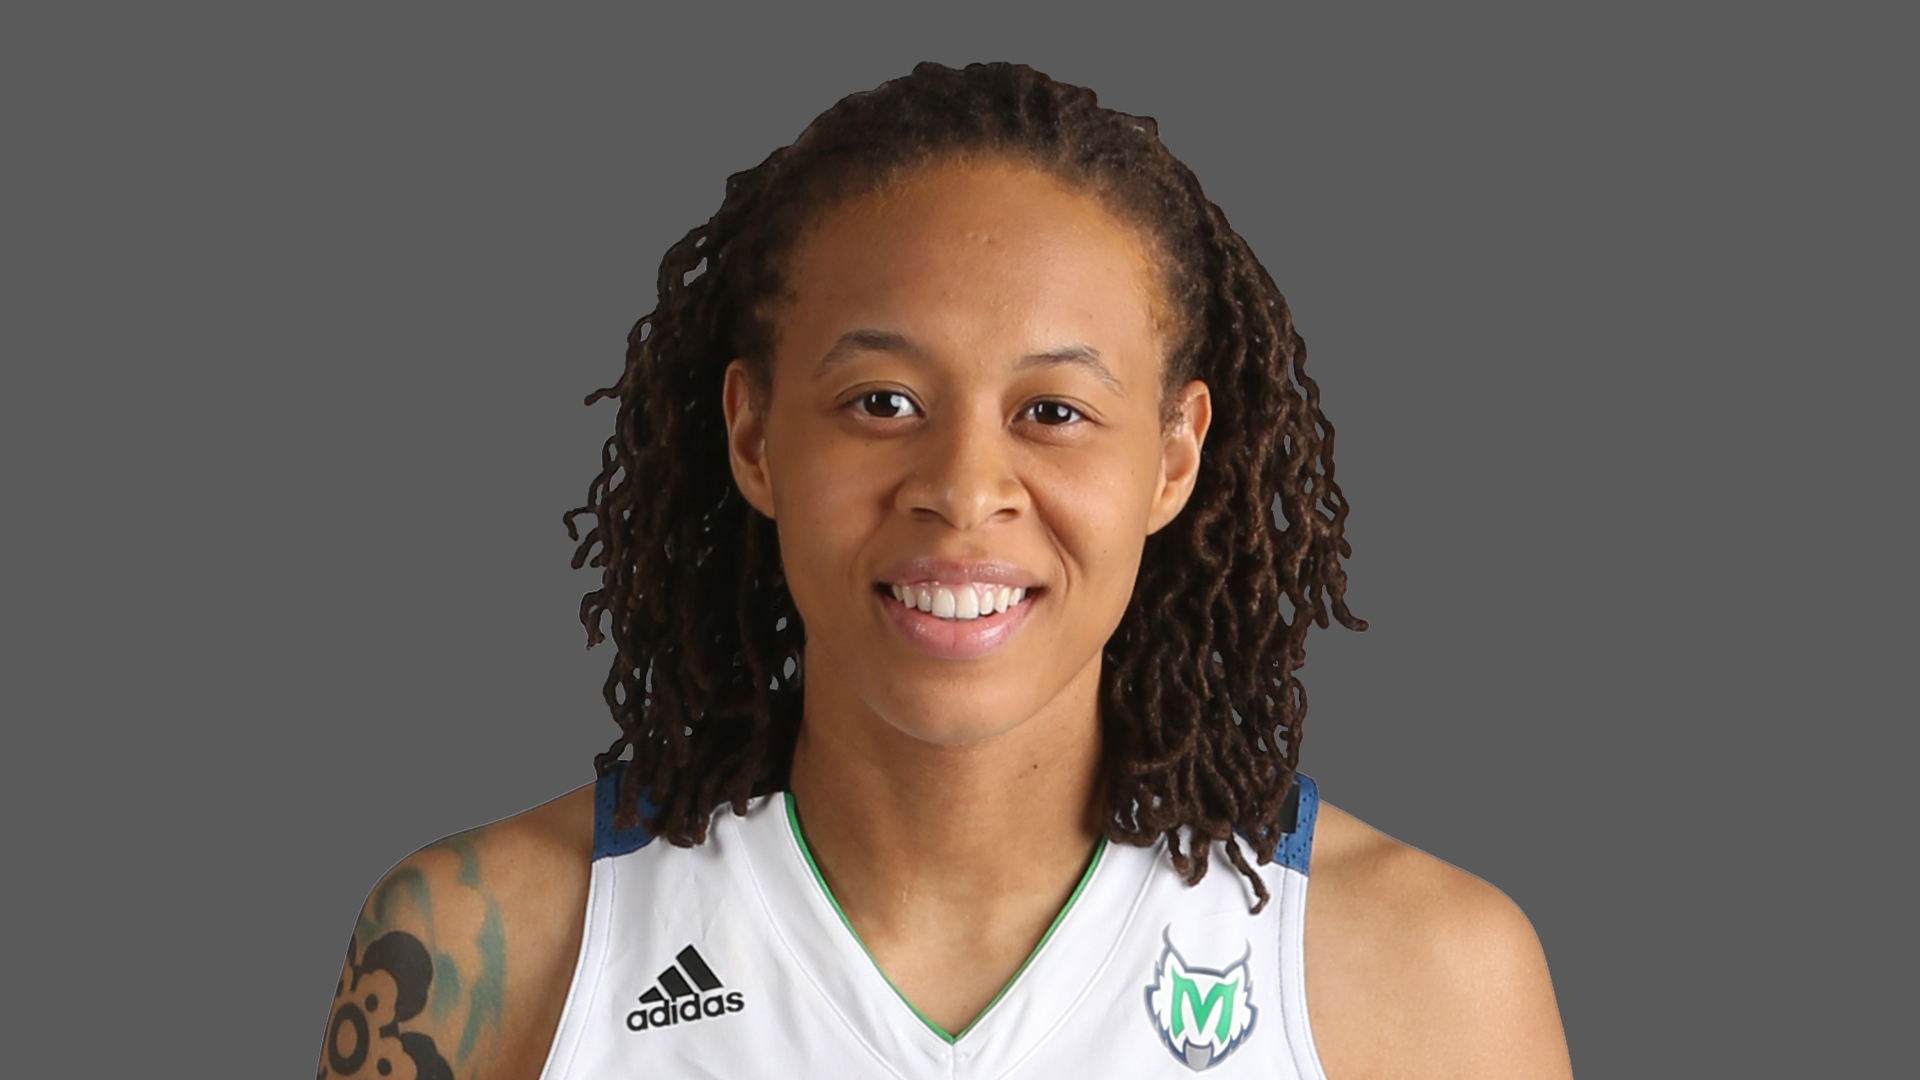 Dishin & Swishin 6/27/13 Podcast: Seimone Augustus embraces her role in Minnesota on and off the court